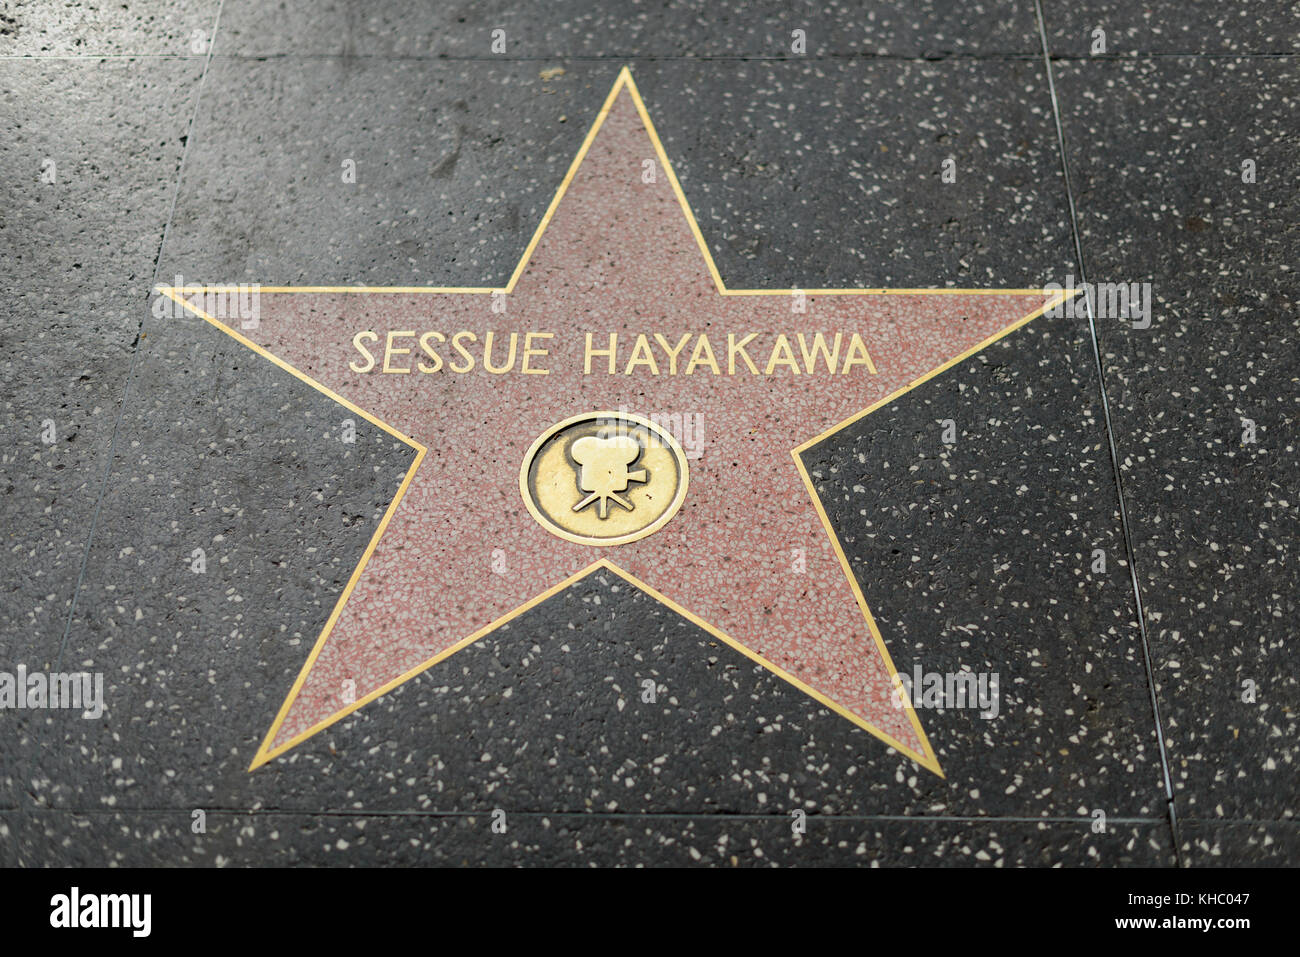 HOLLYWOOD, CA - DECEMBER 06: Sessue Hayakawa star on the Hollywood Walk of Fame in Hollywood, California on Dec. - Stock Image